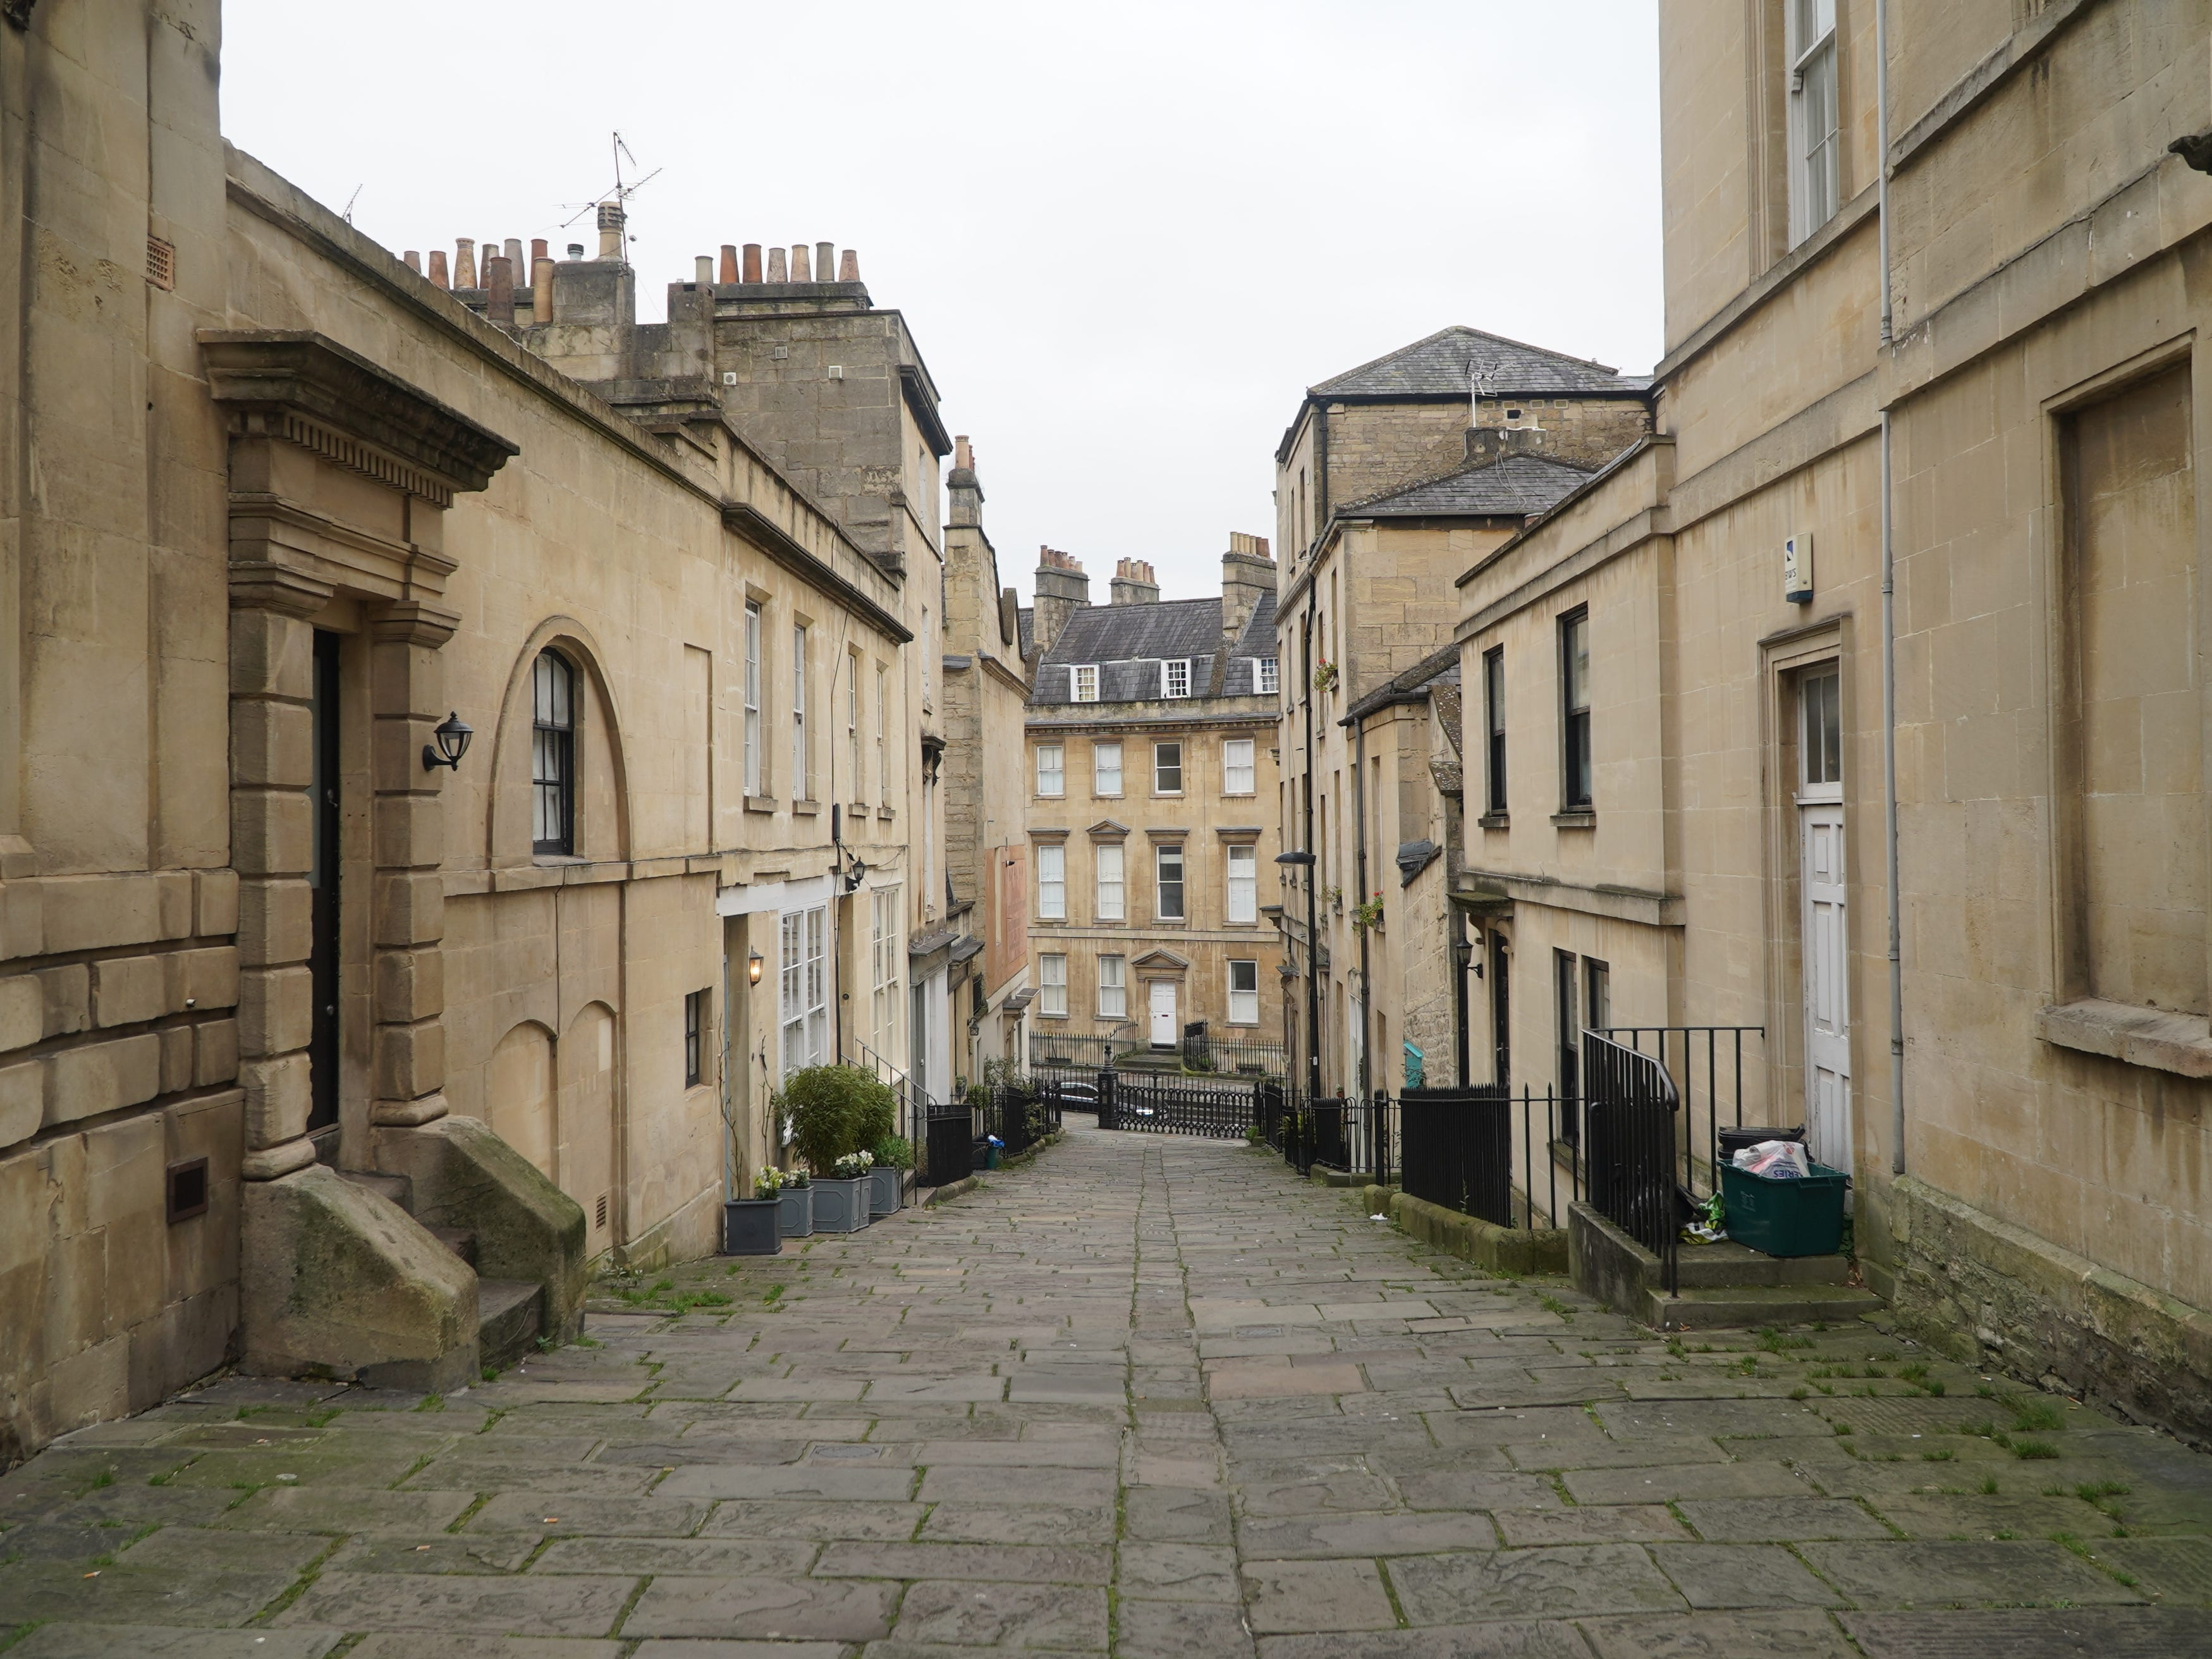 Bath is full of curious streets and alleys just waiting to be explored.